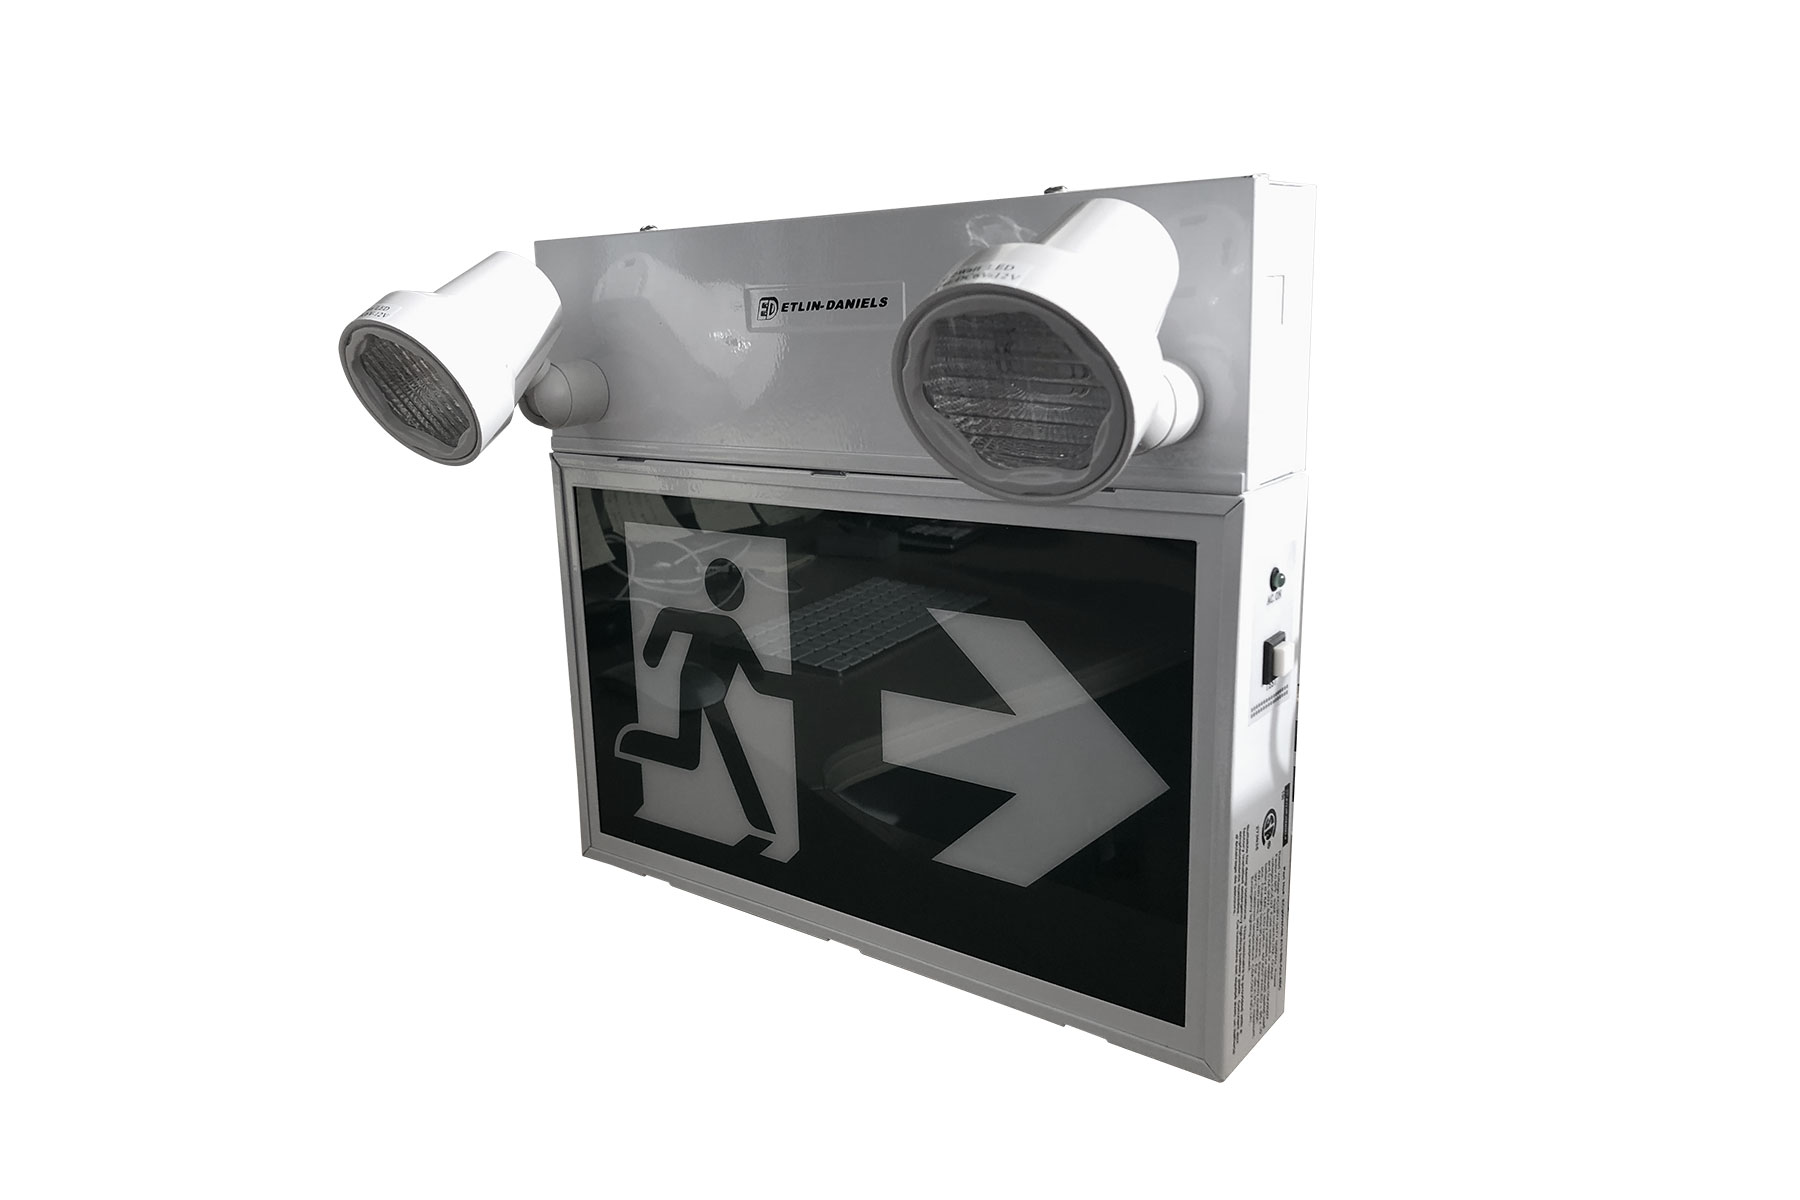 EC300WHM-A13-BB-GU-4RC - LED RUNNING MAN EXIT SIGN WITH COMBO HEADS